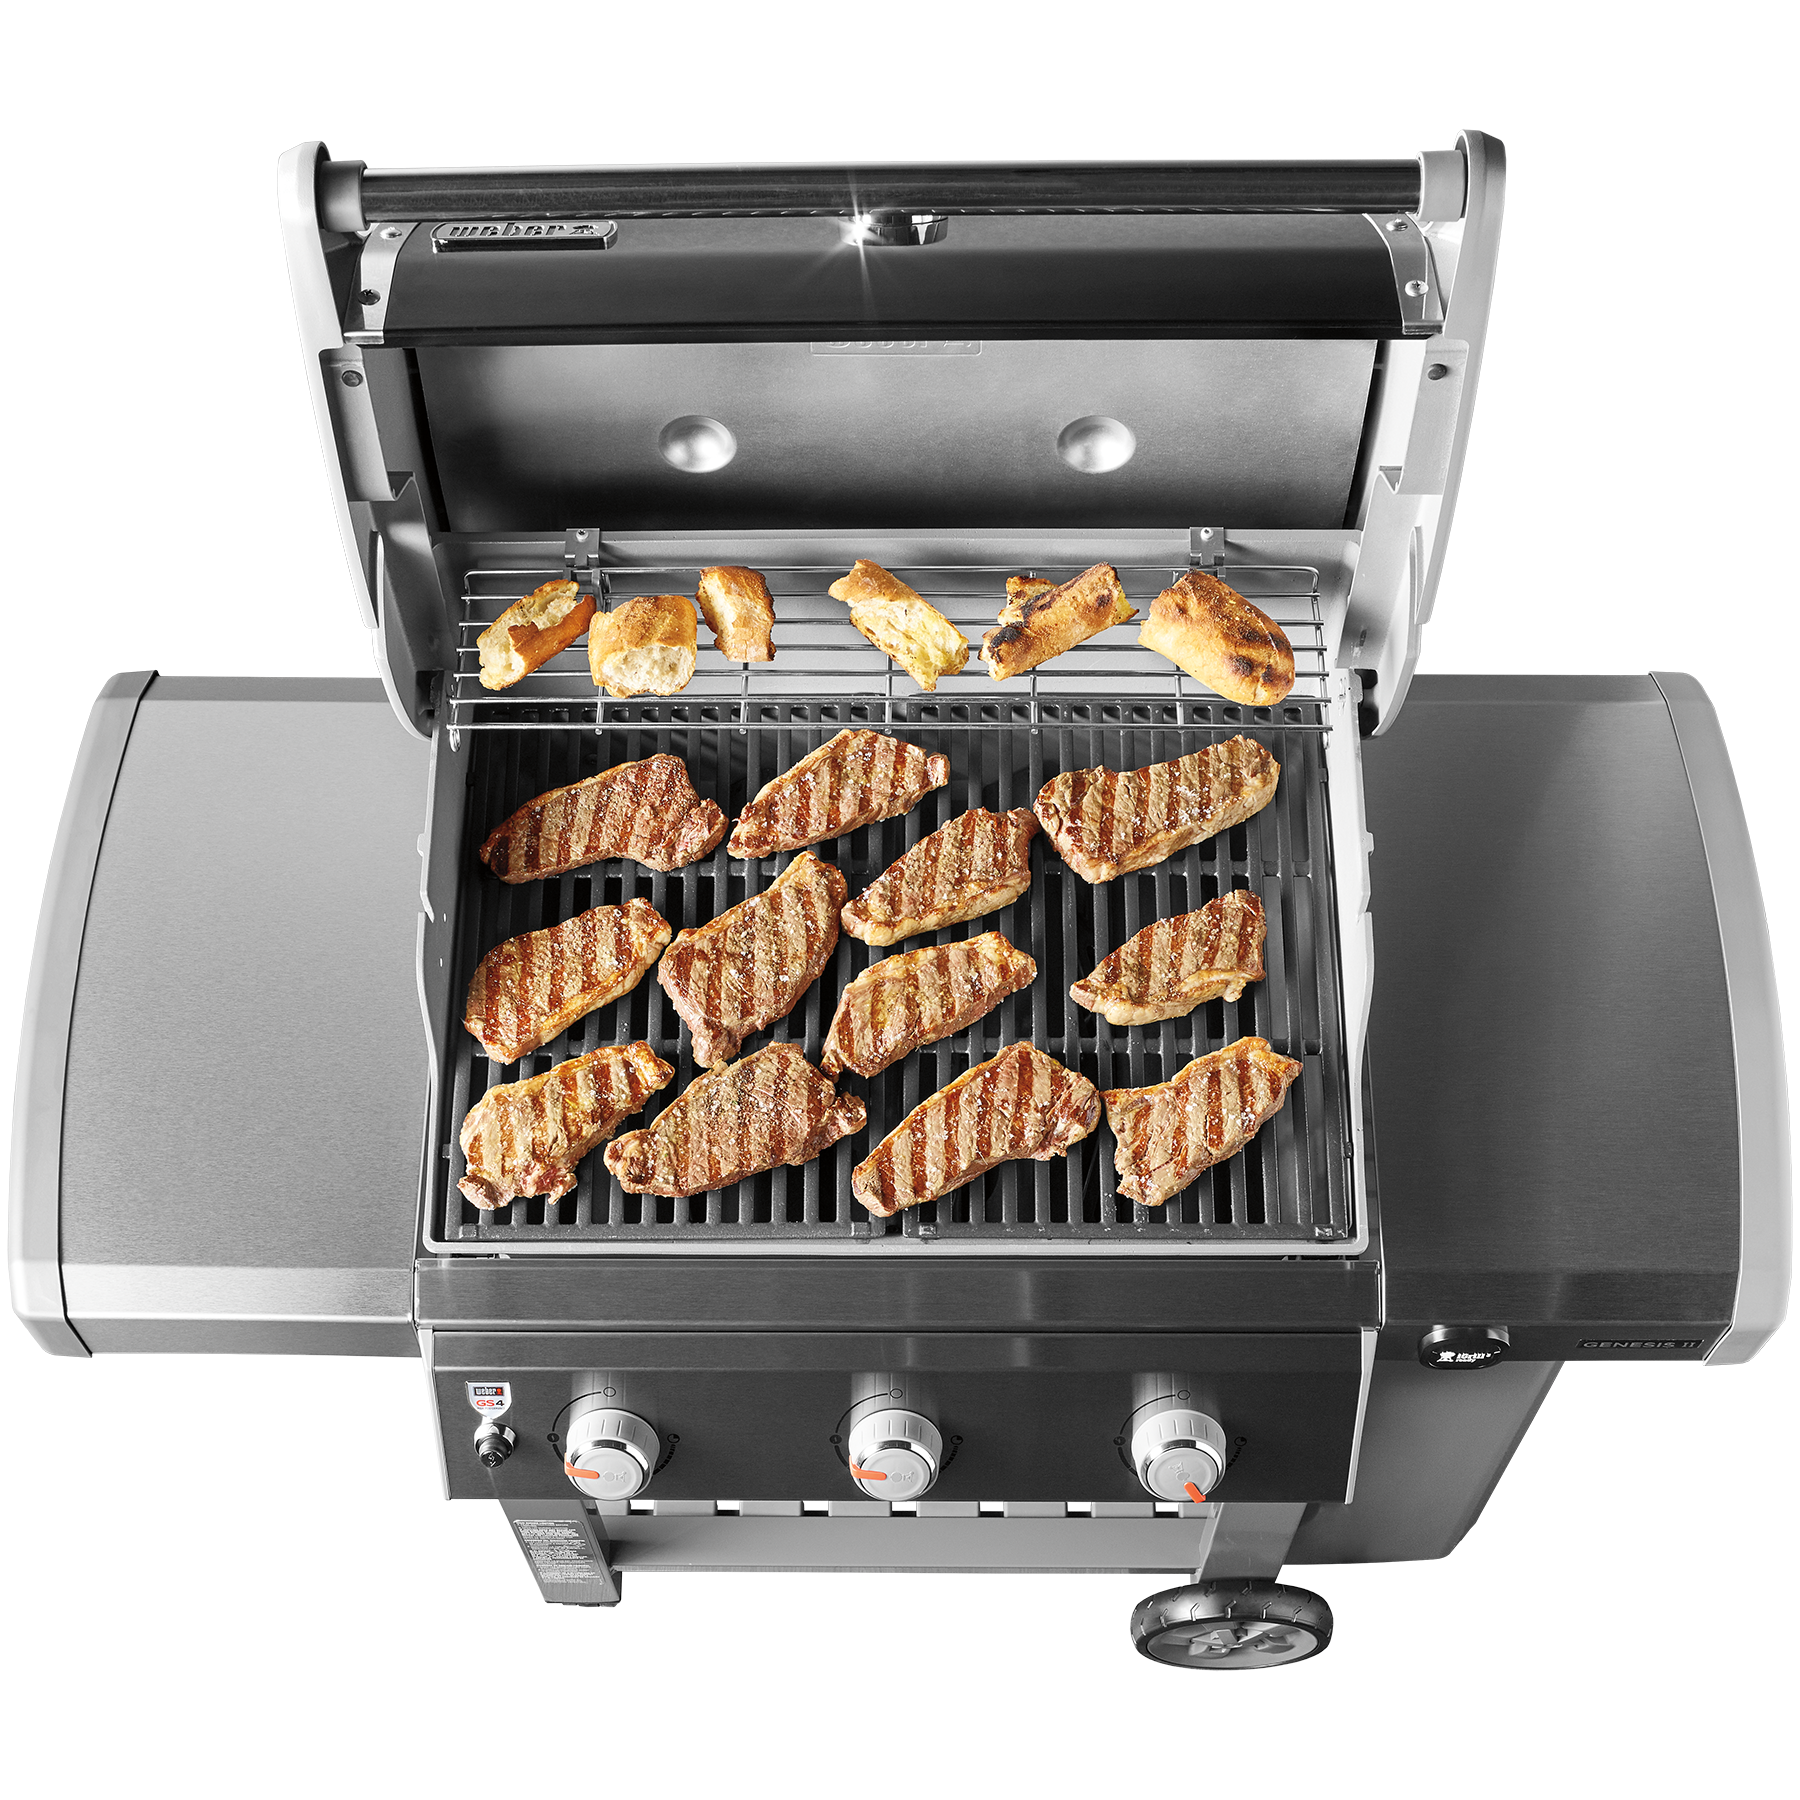 Genesis® II E-310 GBS Gas Barbecue